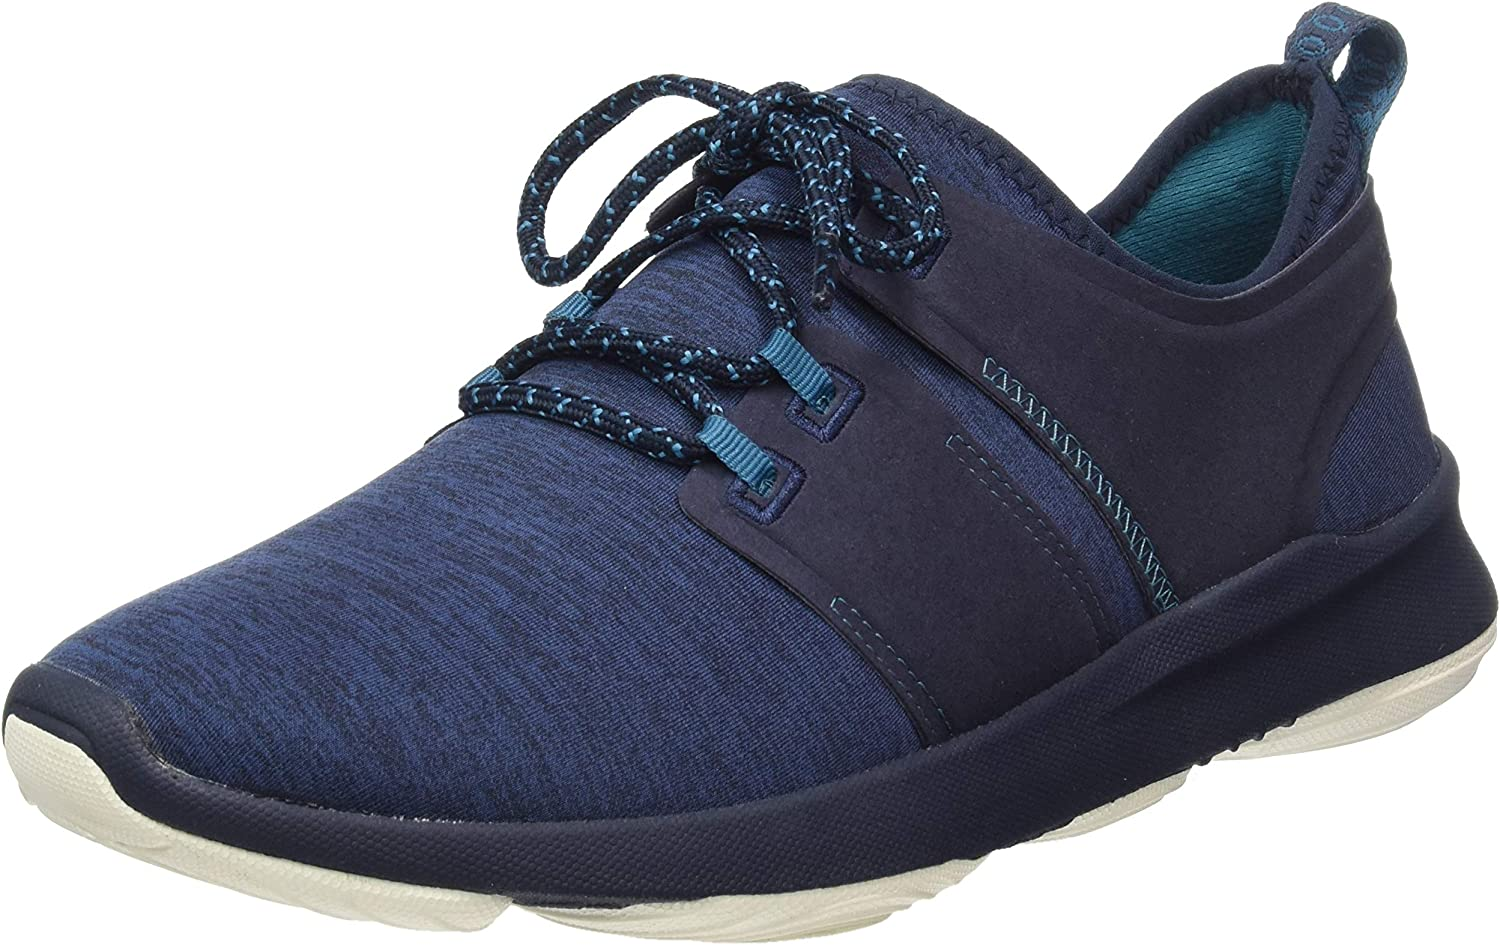 Hush Puppies Mens Geo BounceMax Lace Up Trainer Navy Size UK 7 EU 41